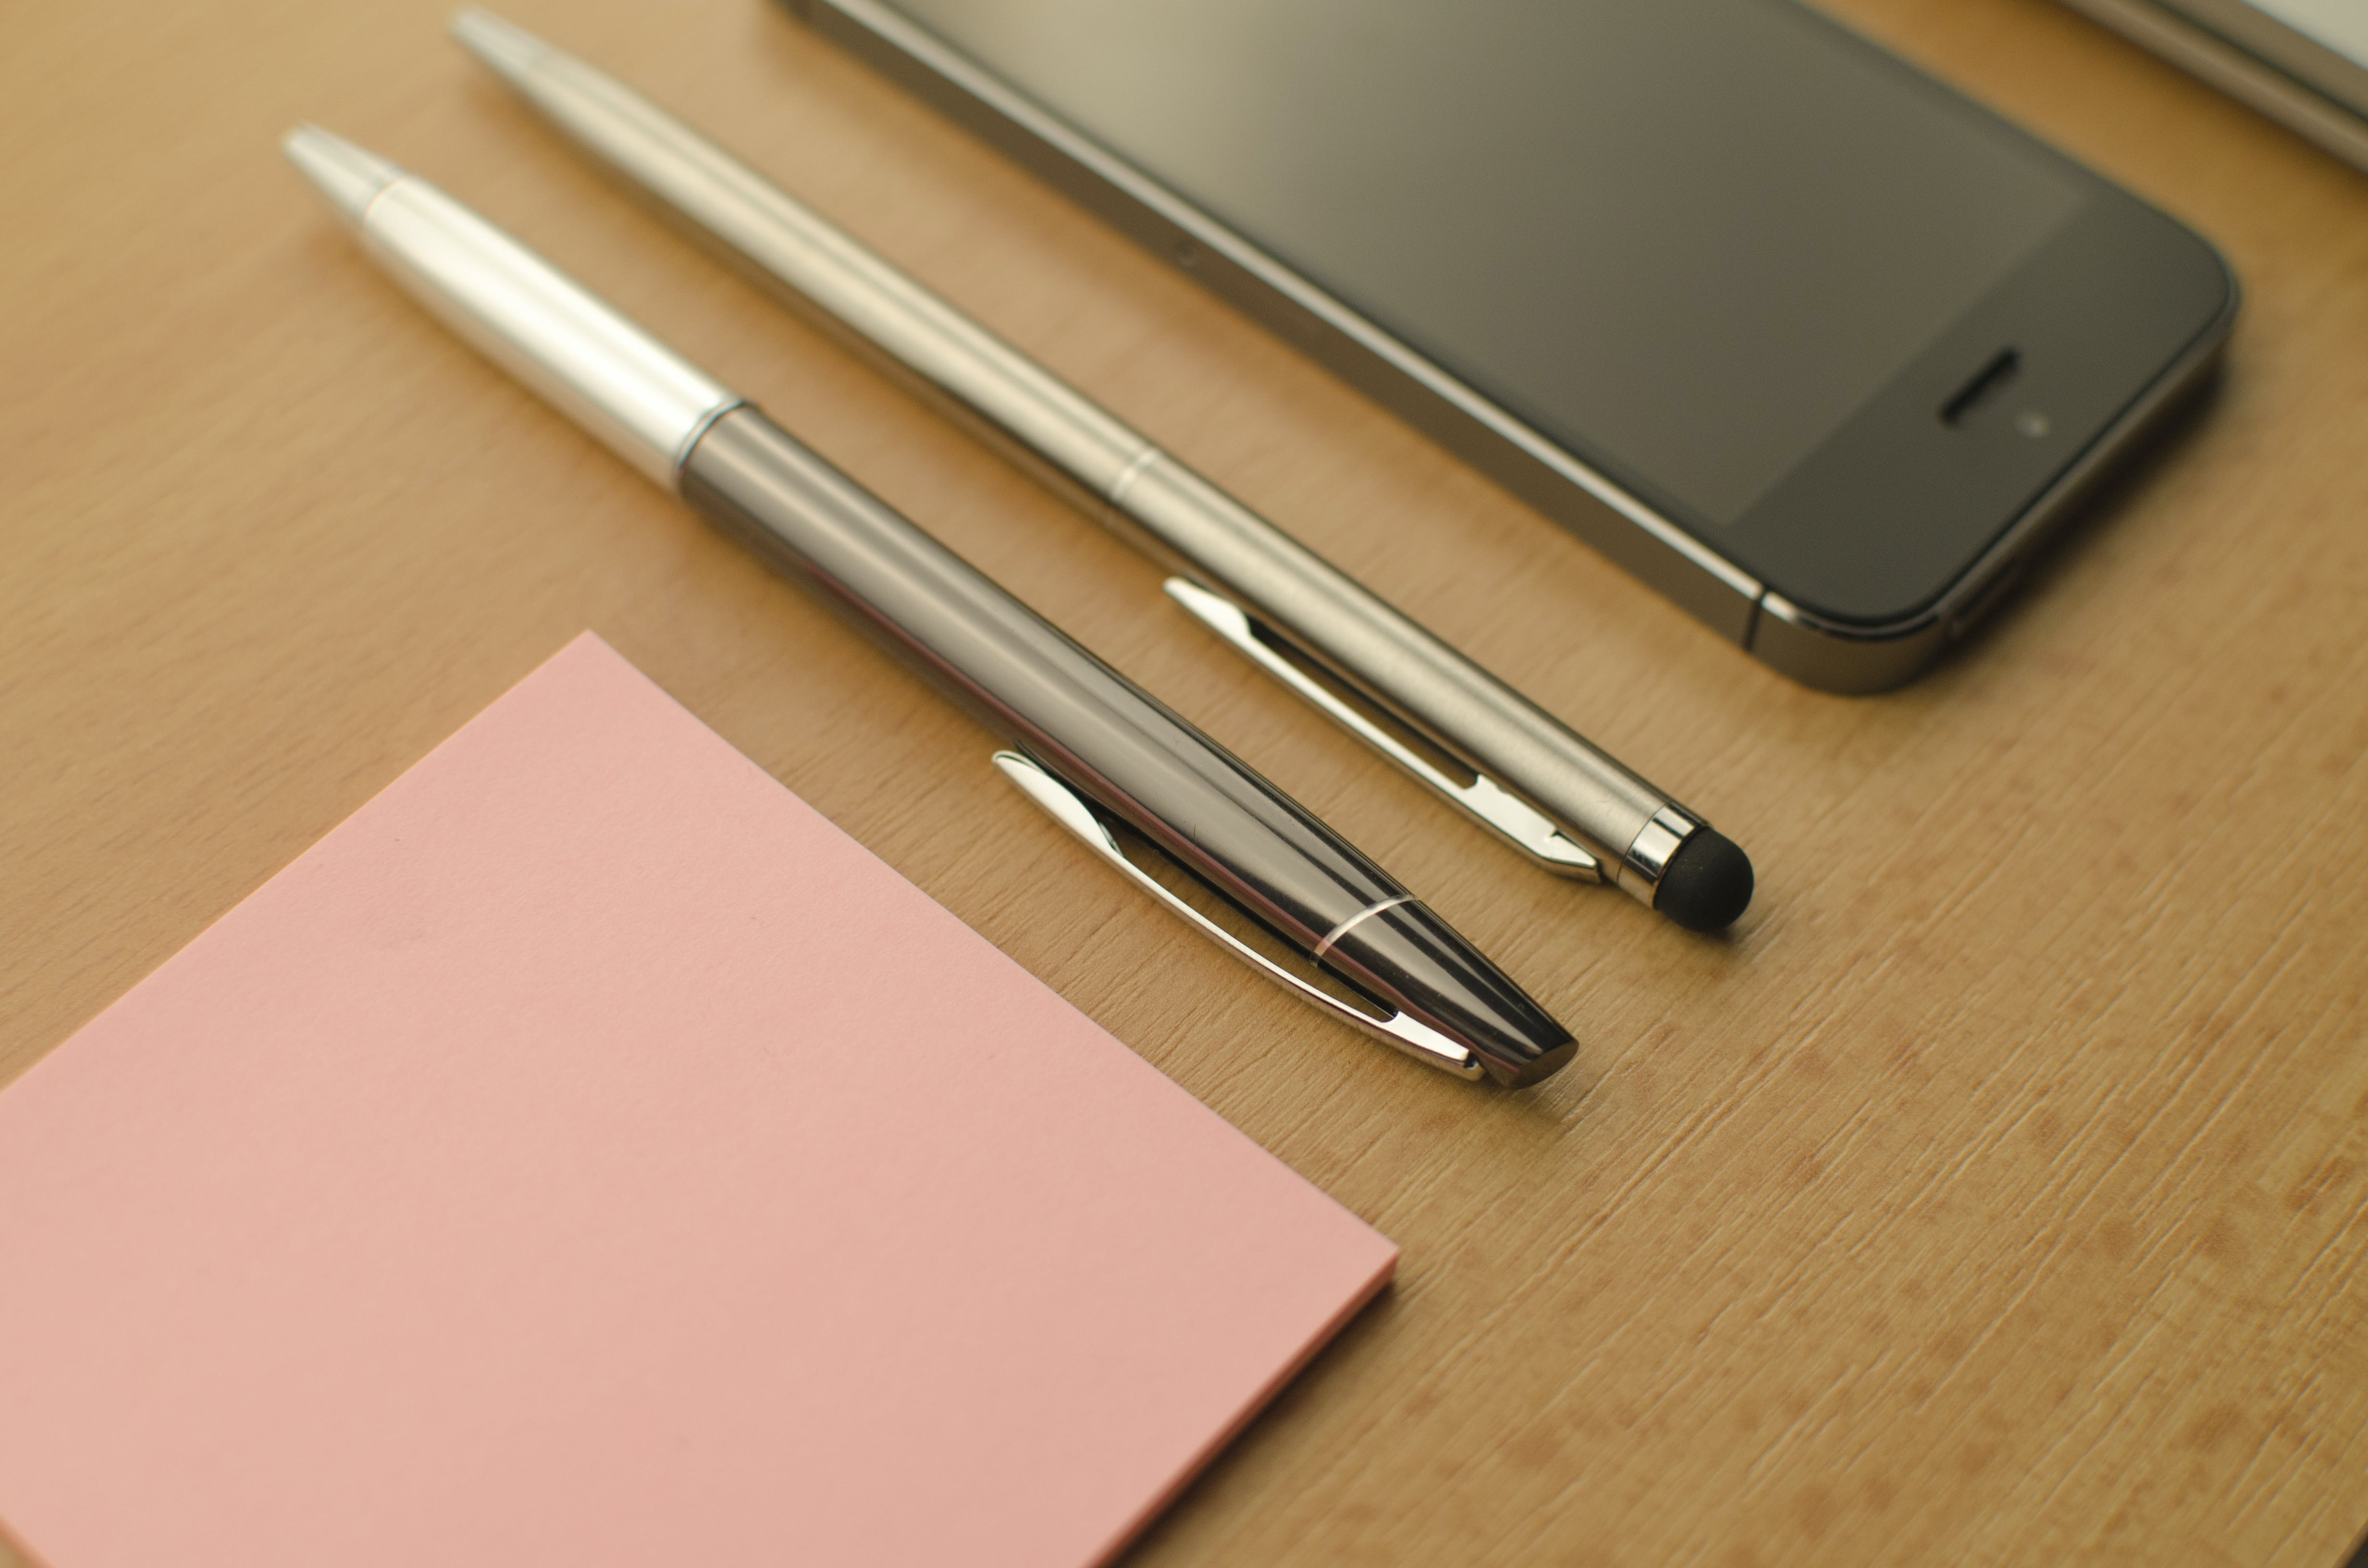 Two Click Pens Beside Iphone on Table